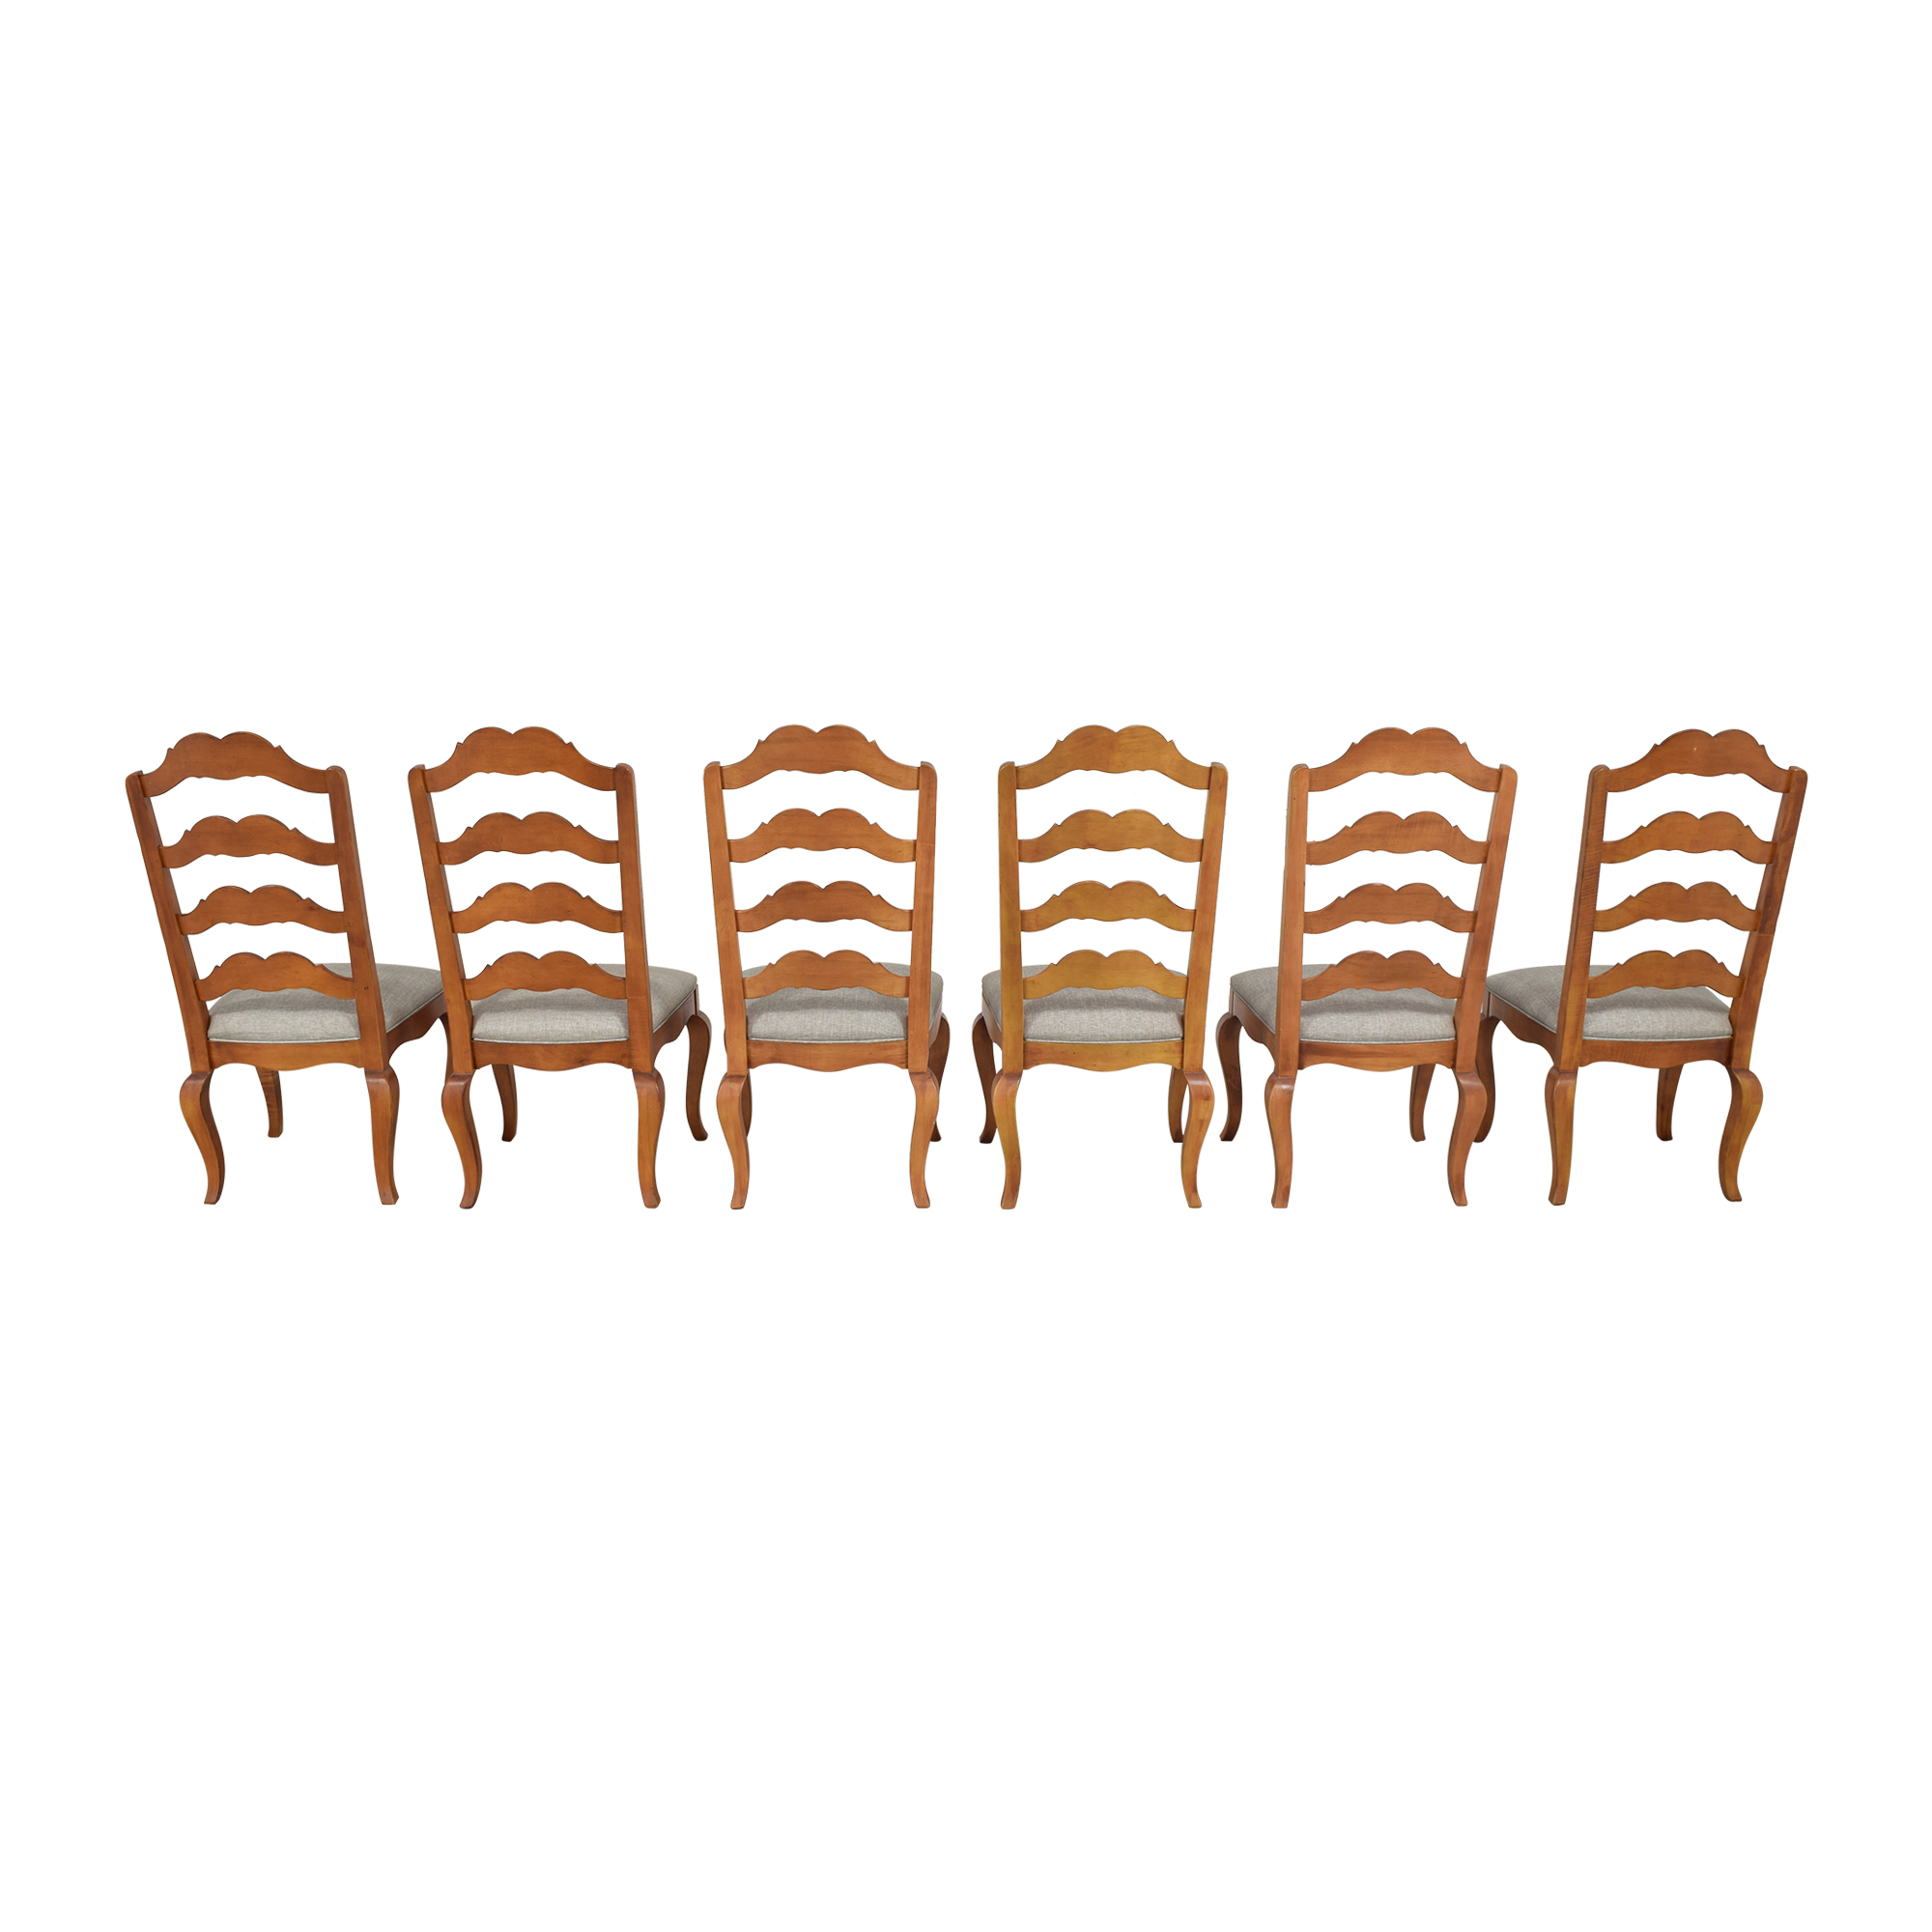 Ethan Allen Ethan Allen Legacy Dining Chairs ma